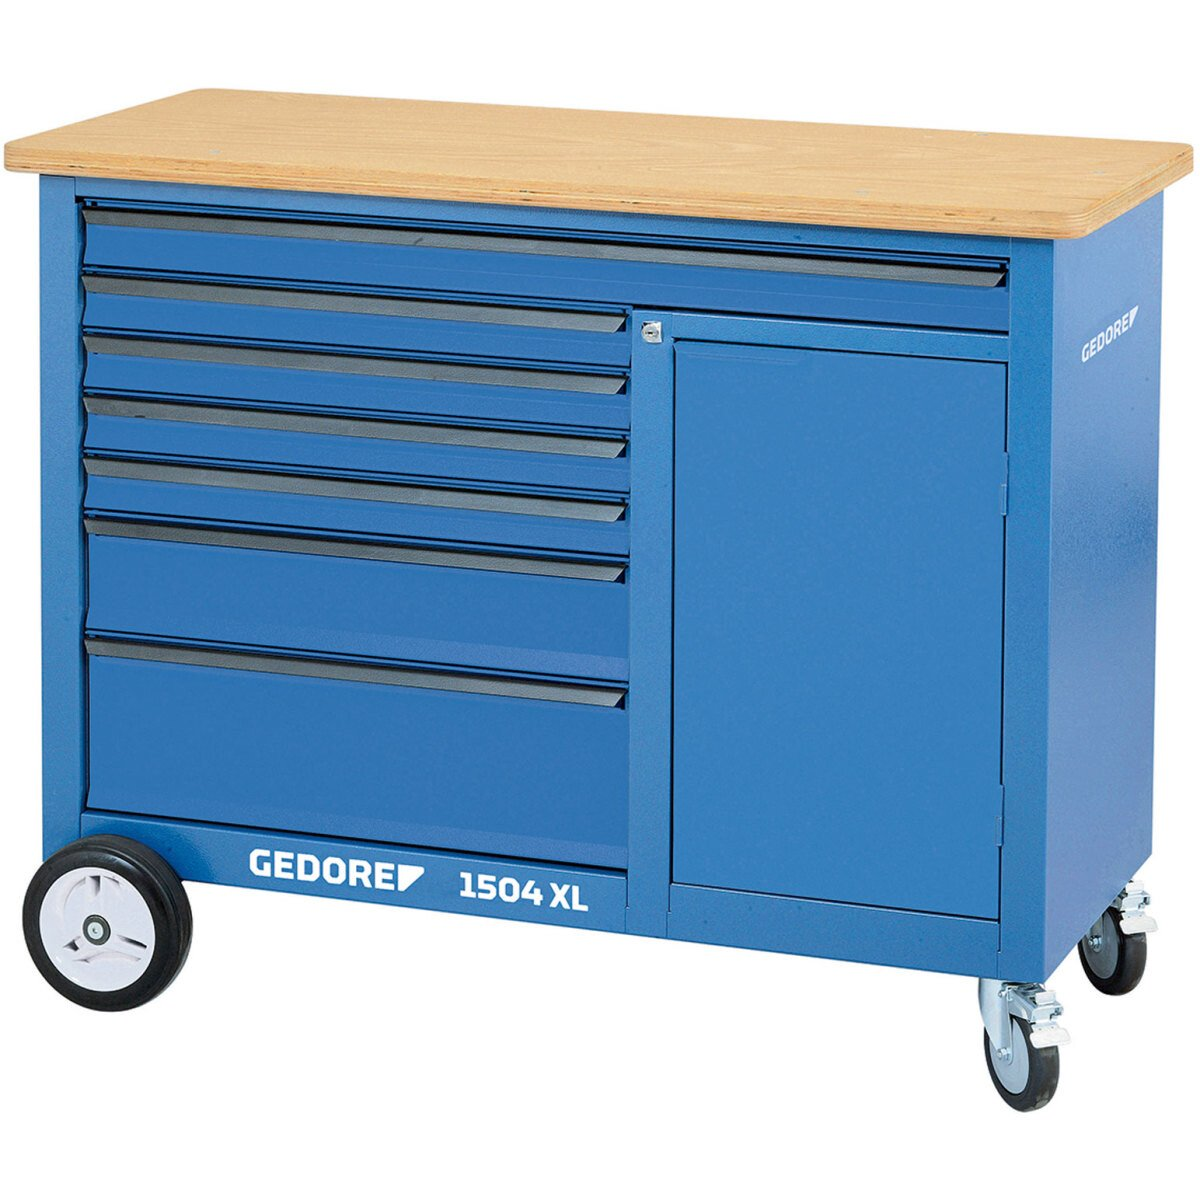 Gedore 1988468 Mobile Workbench Extra Wide 1504 XL